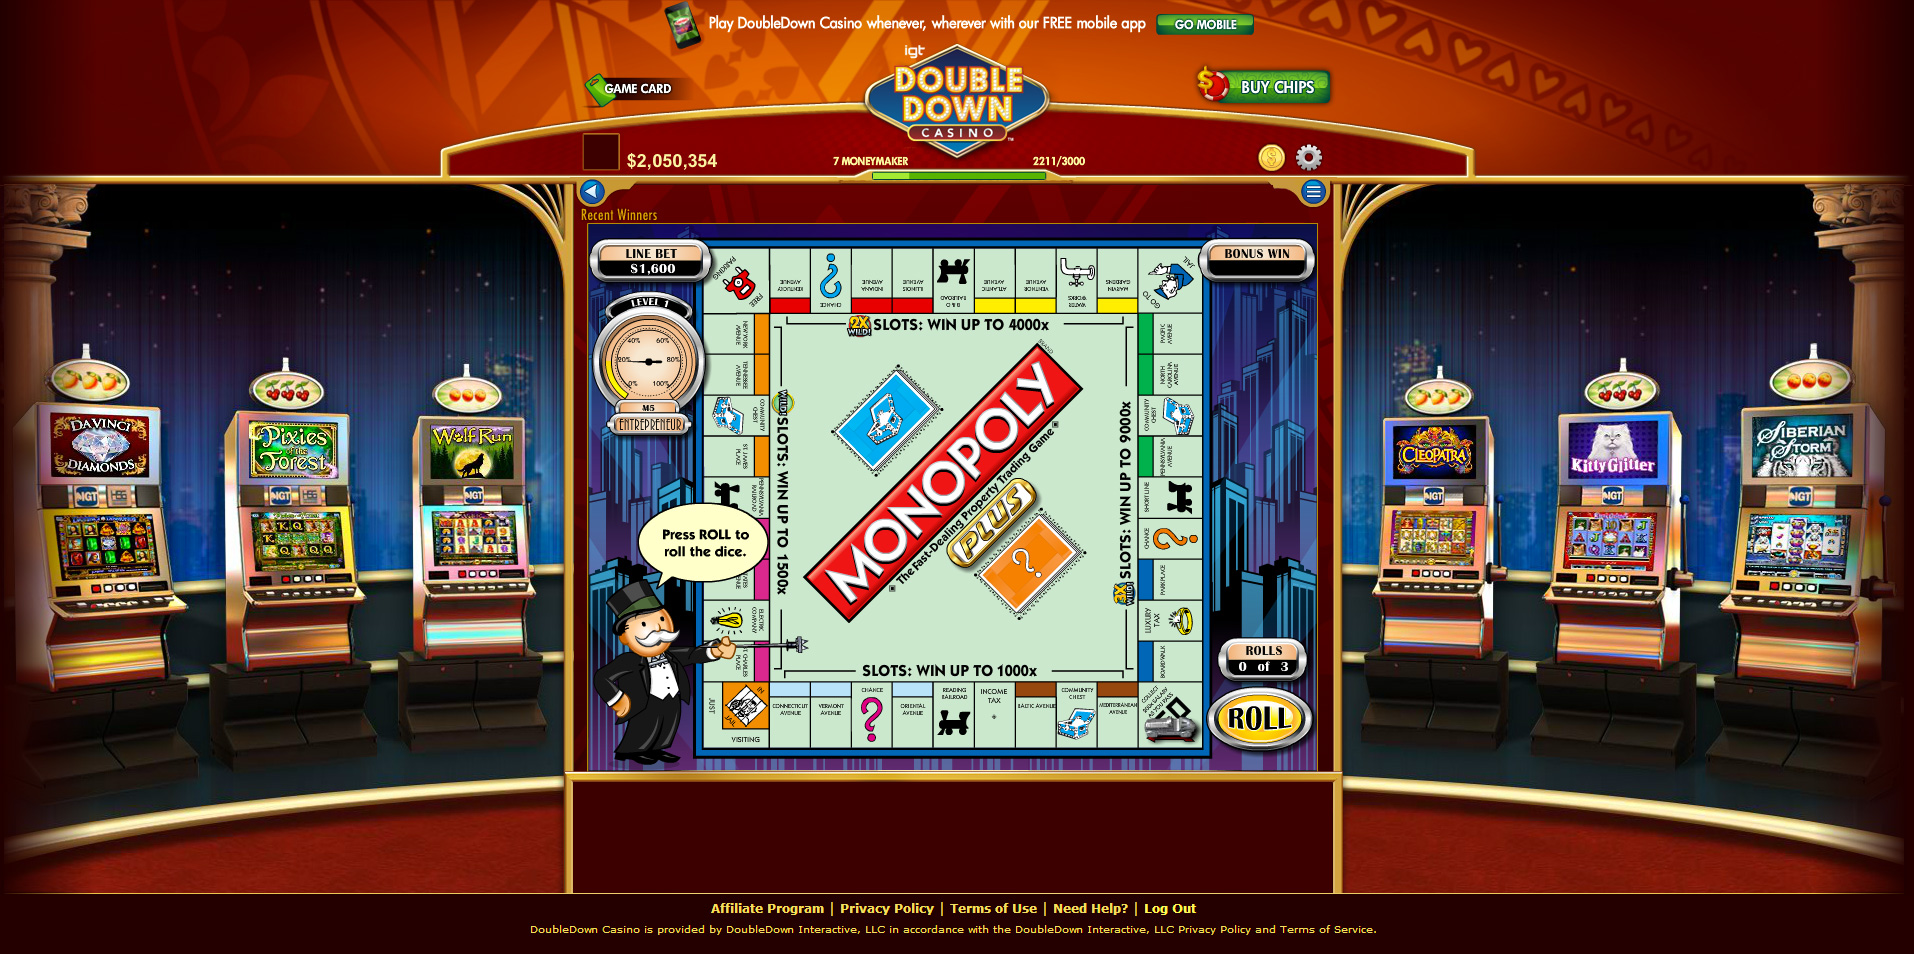 Double down casino game card soboba casinos